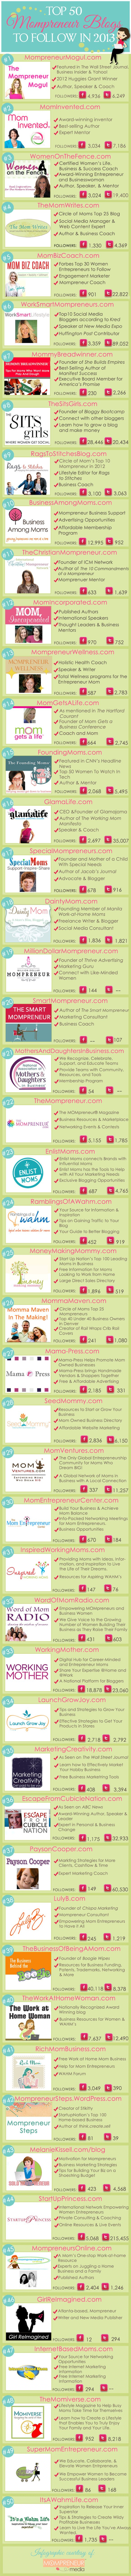 Top 50 Mompreneurs Blogs to Follow